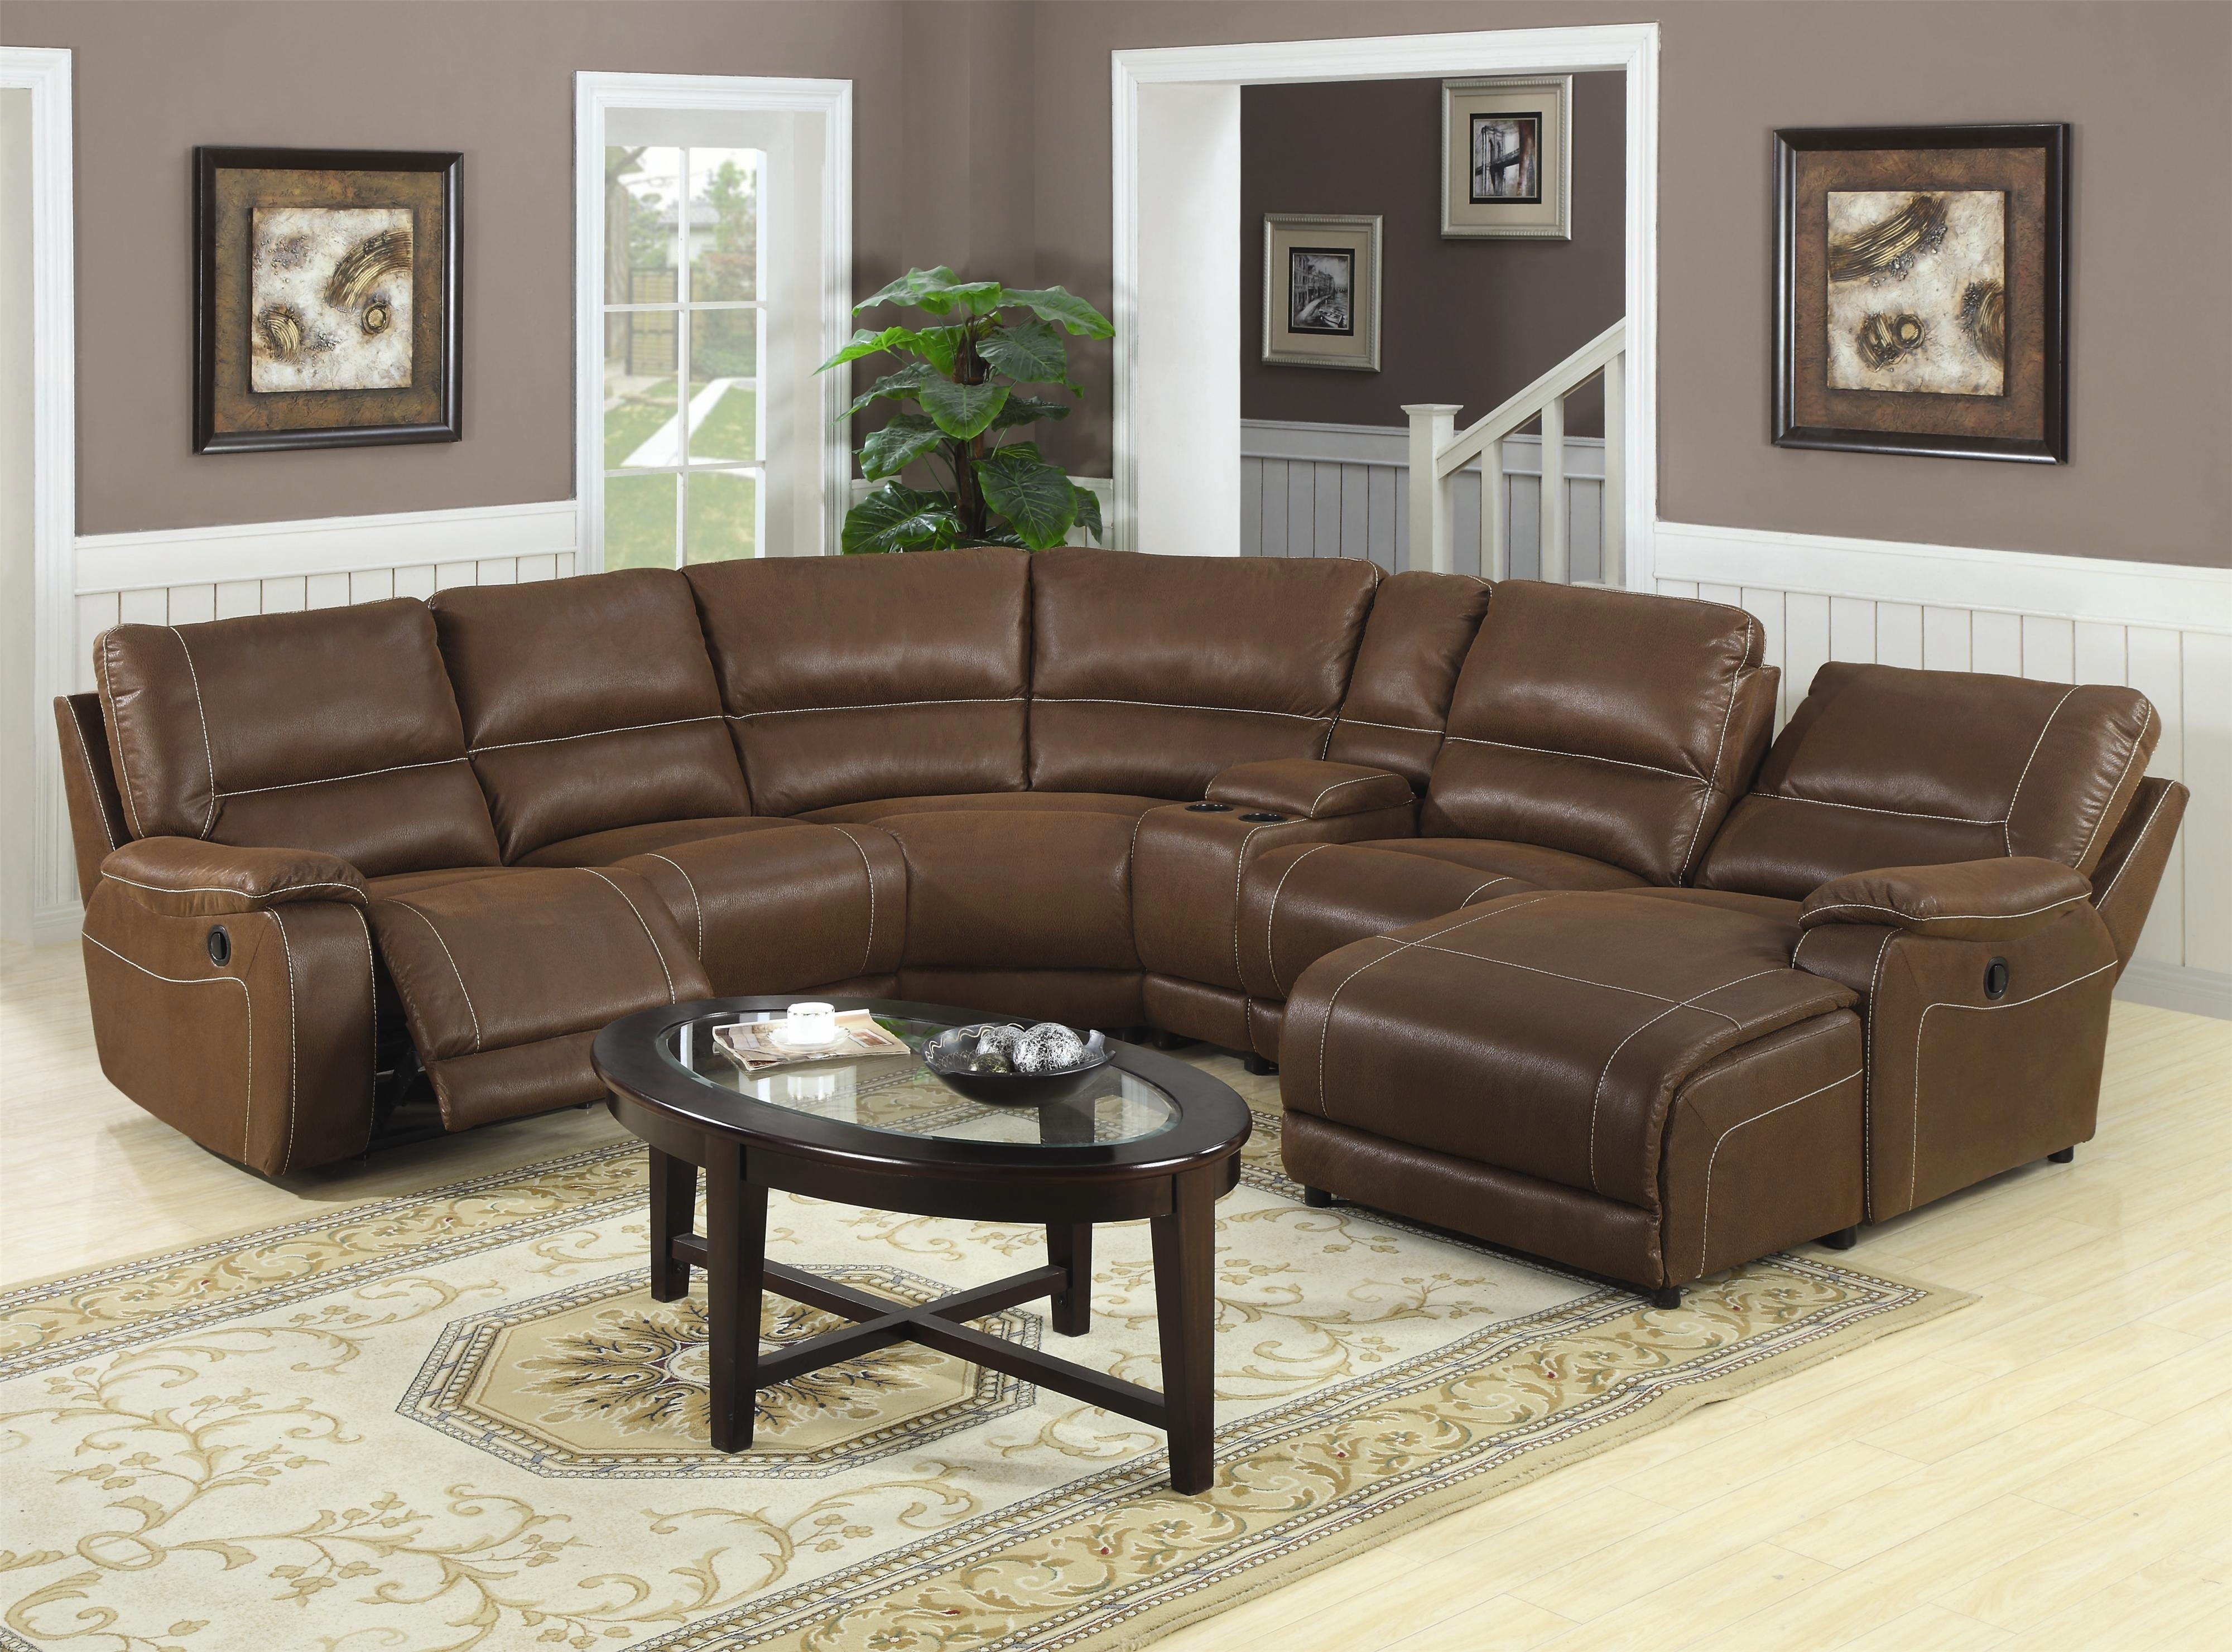 Awesome Suede Sectional Sofas Sale 2018 – Couches And Sofas Ideas within Leather And Suede Sectional Sofas (Image 3 of 10)